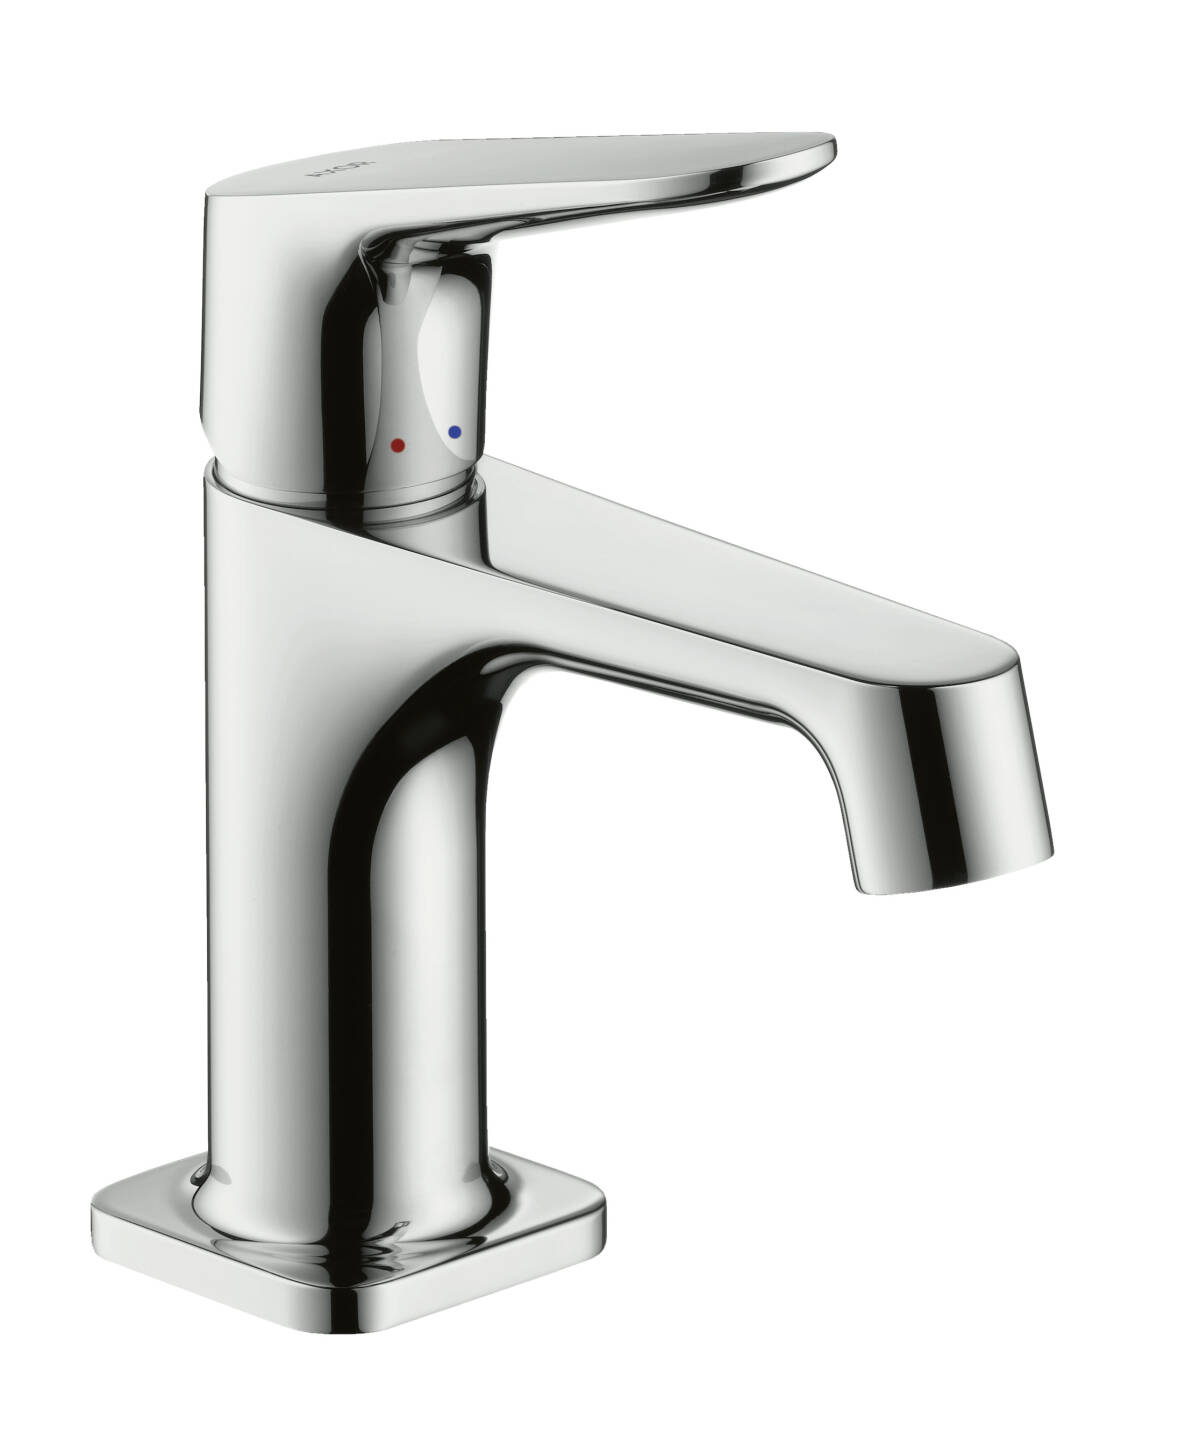 Single lever basin mixer 70 for hand washbasins with pop-up waste set, Polished Bronze, 34016130